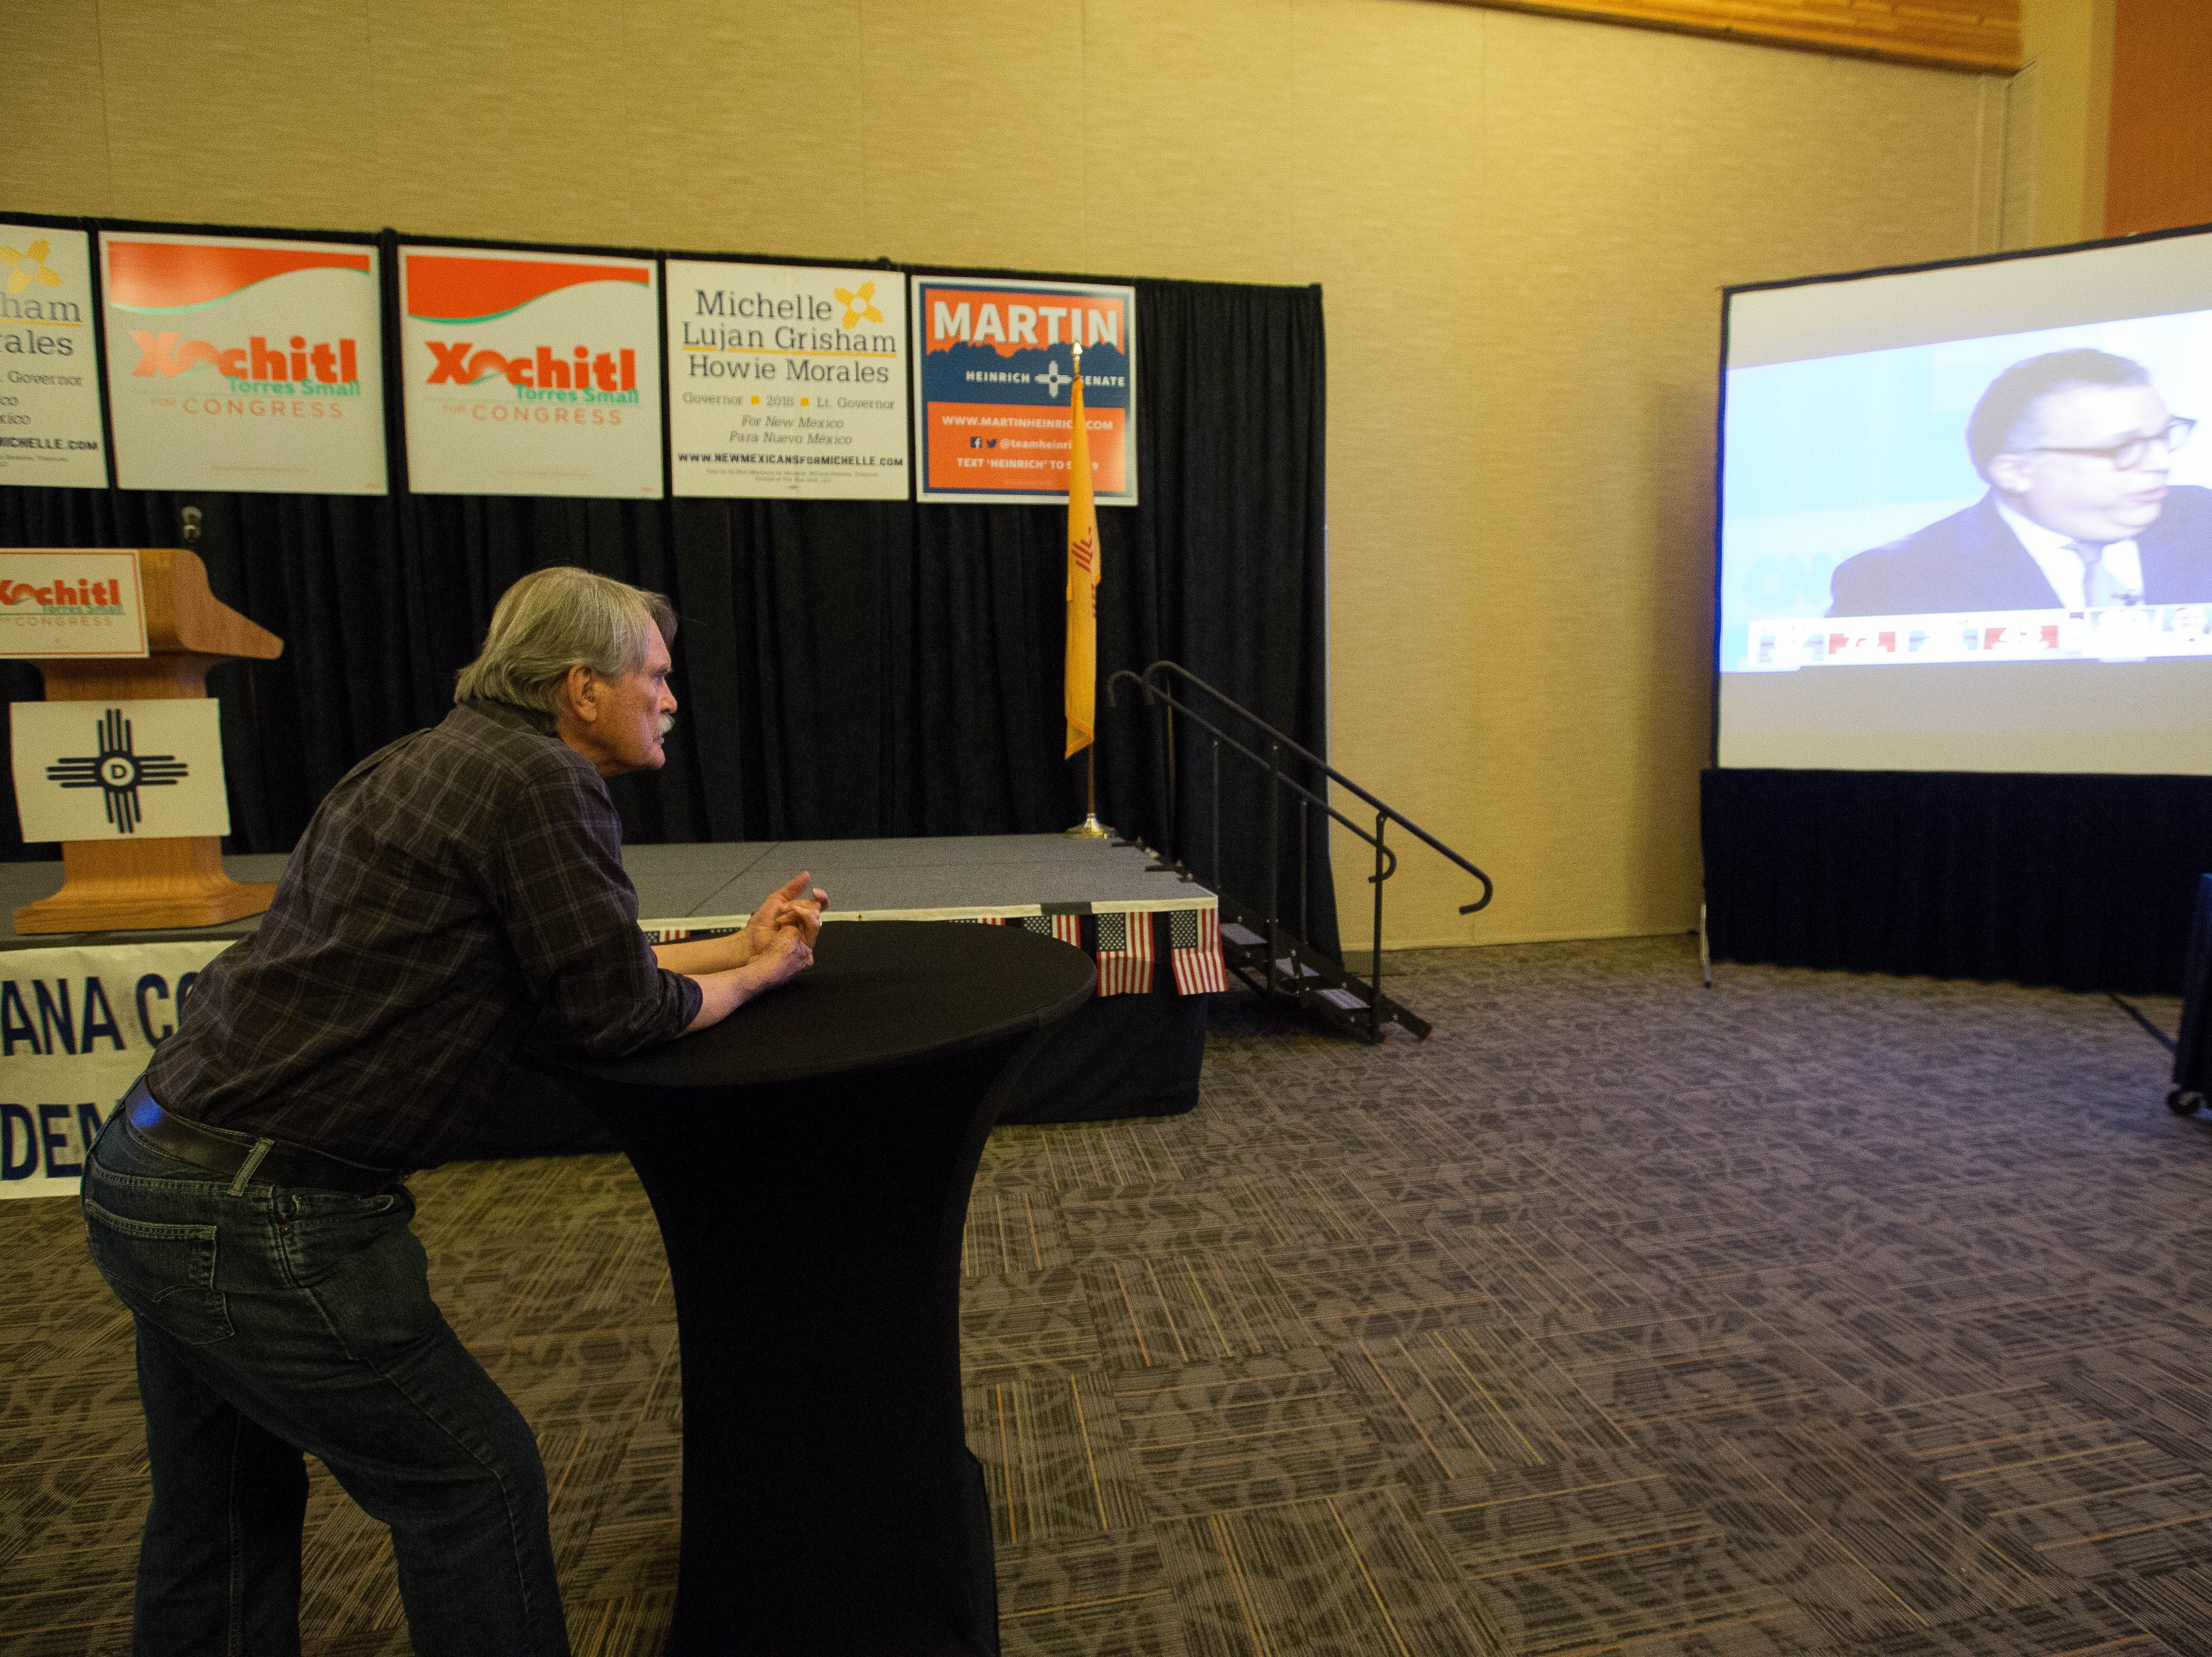 Charlie Donaldson, a volunteer for Xochitl Torres Small from Brooklyn, Ny, watches results come in at a democratic watch party being held at the Las Cruces Convention Center, Tuesday November 6, 2018.